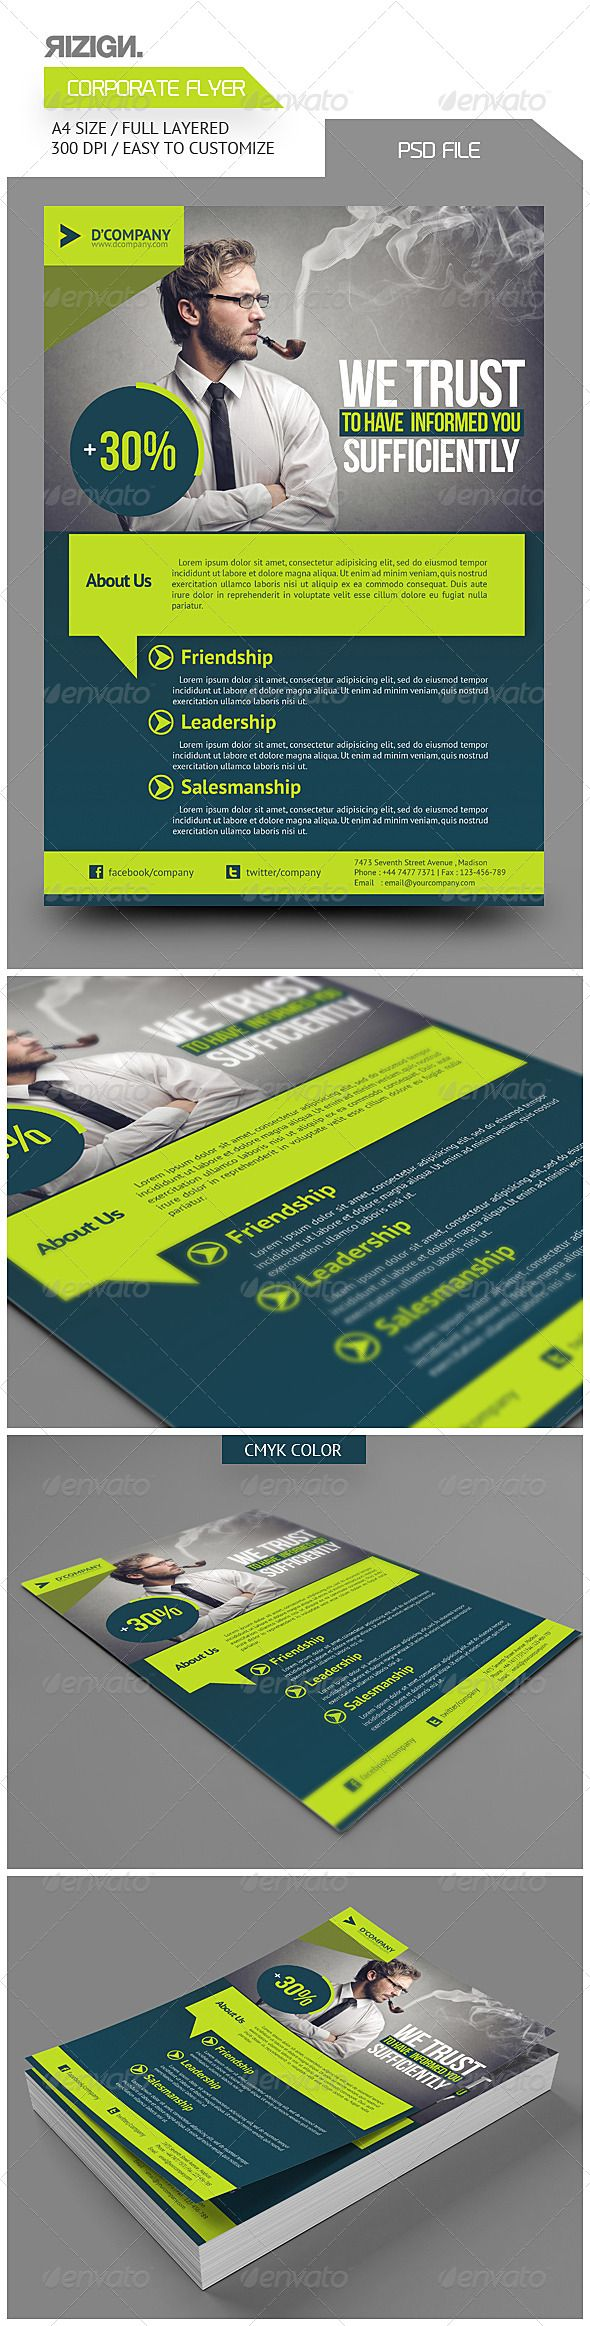 Corporate Flyer . Fully editable PSD flyer template. #available #BigSize #business #cmyk #corporate #facebook #flyer #offering #office #product #ReadyToPrint #twitter